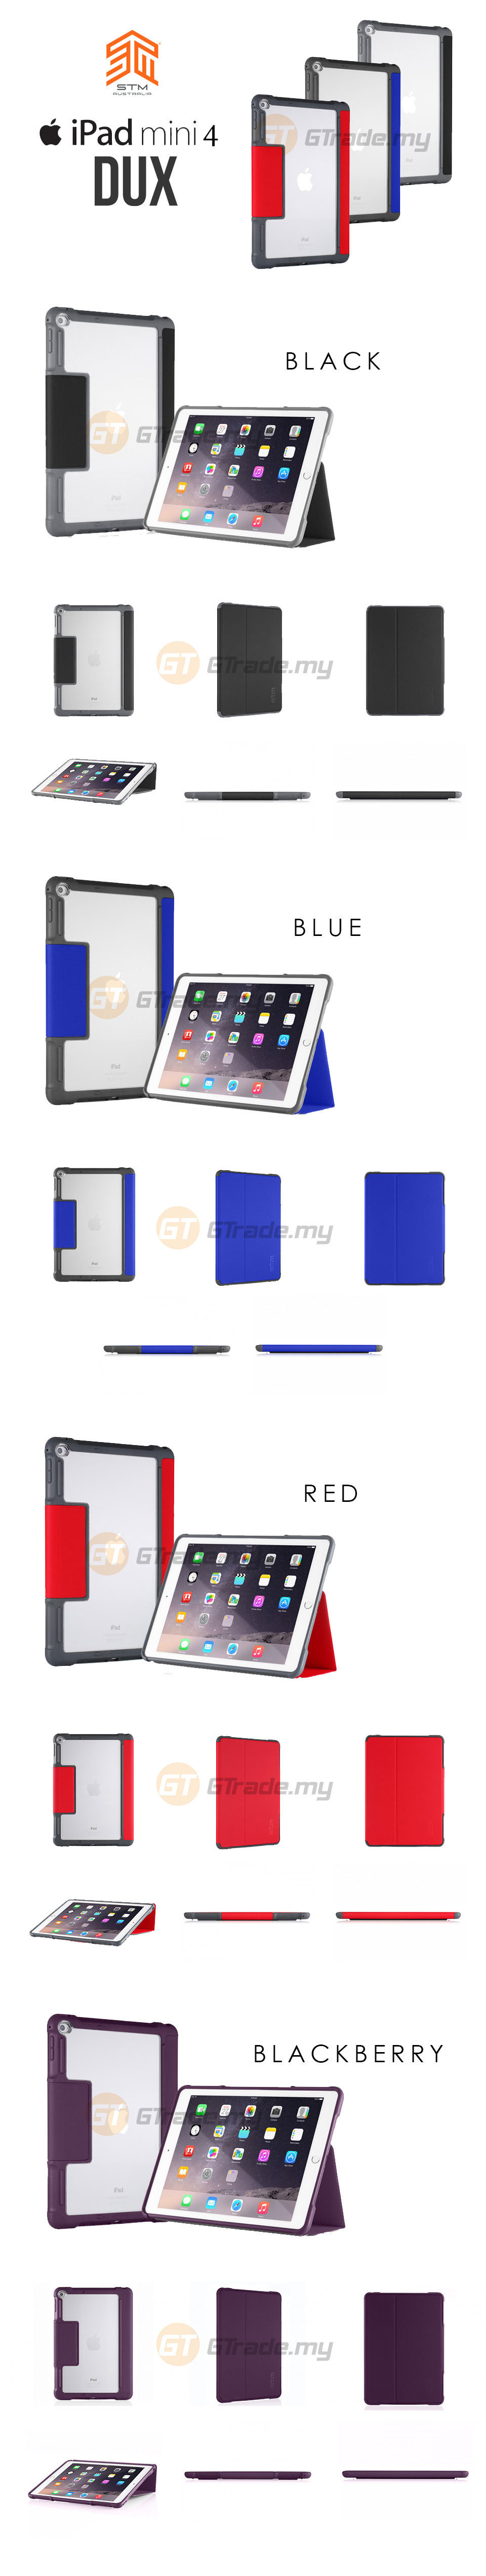 stm-dux-case-apple-ipad-mini-4-p